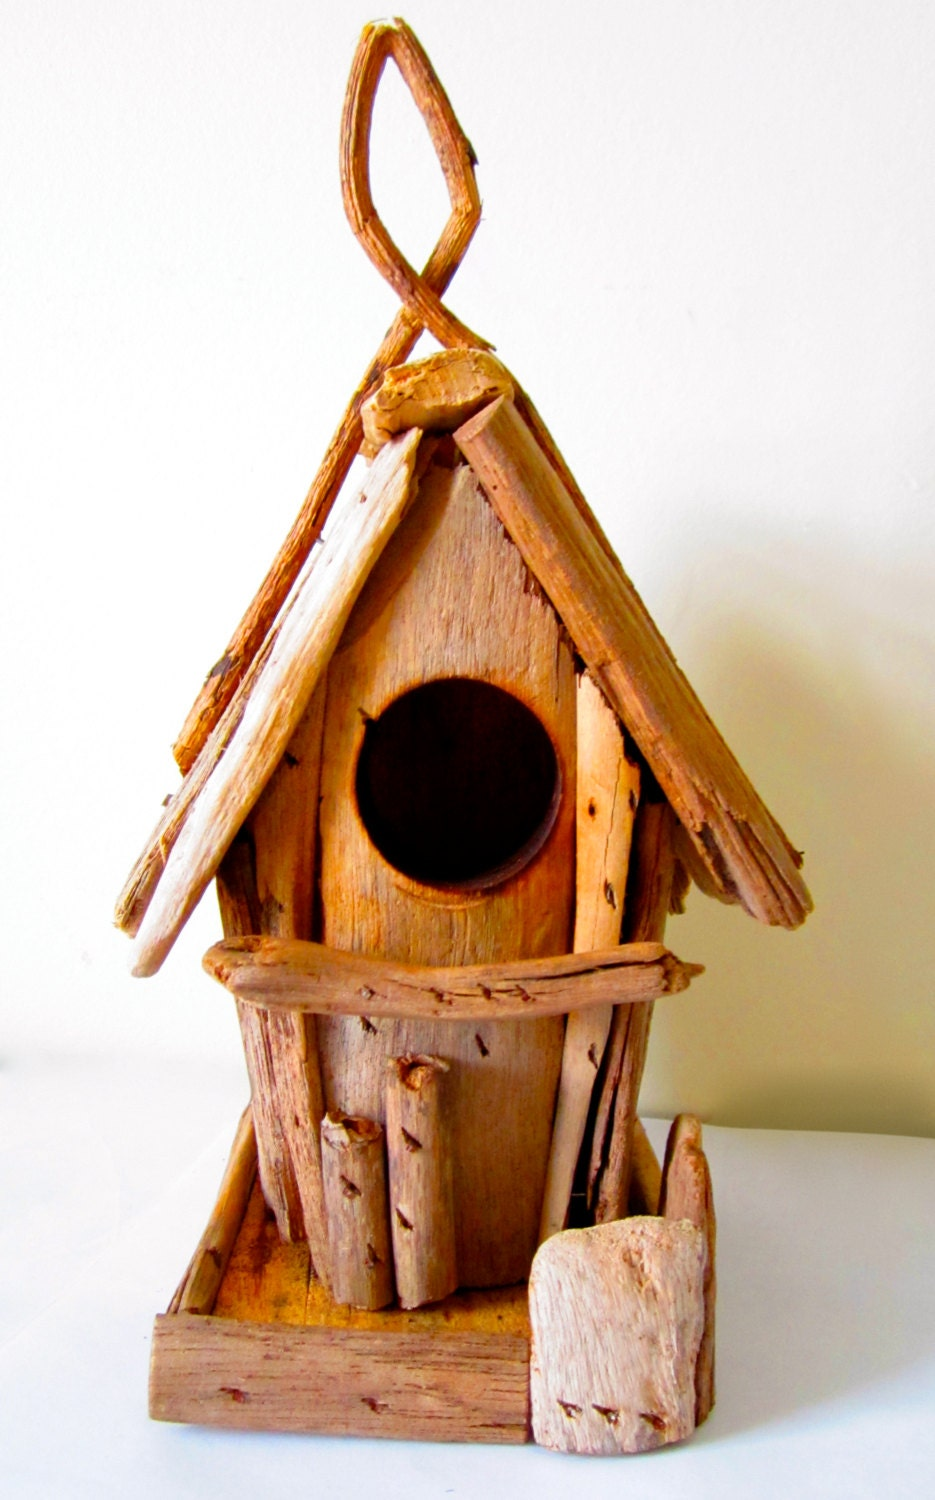 Driftwood Birdhouse Driftwood Home Decor Wooden Home Decorators Catalog Best Ideas of Home Decor and Design [homedecoratorscatalog.us]